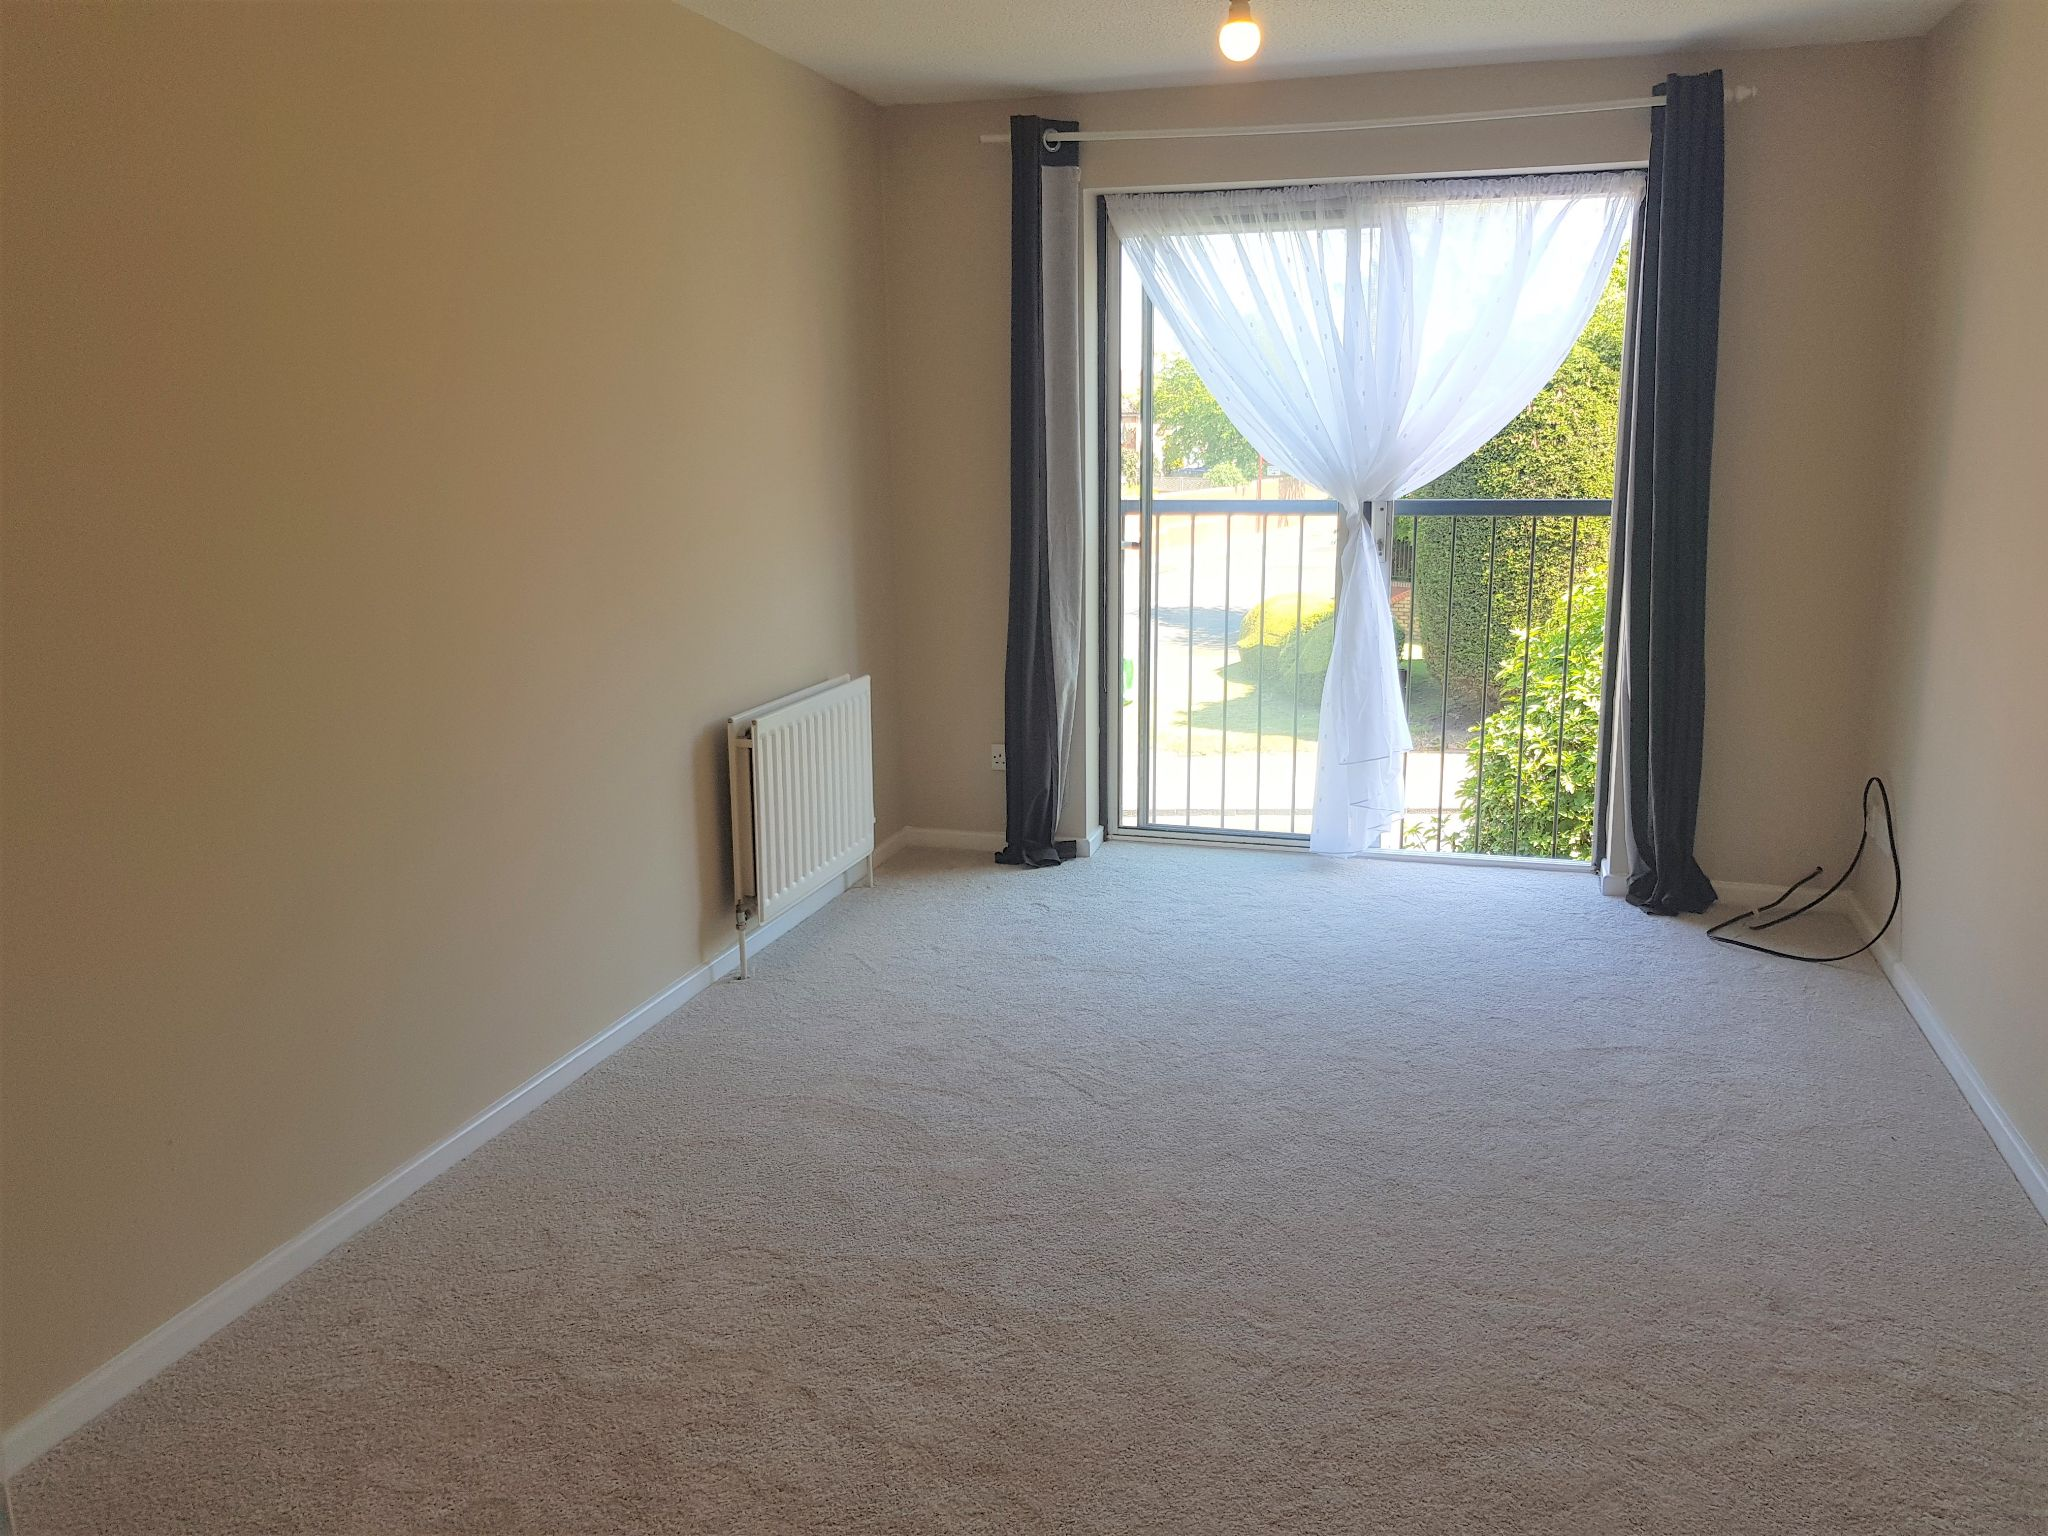 1 Bedroom Apartment Flat/apartment For Sale - Reception Room